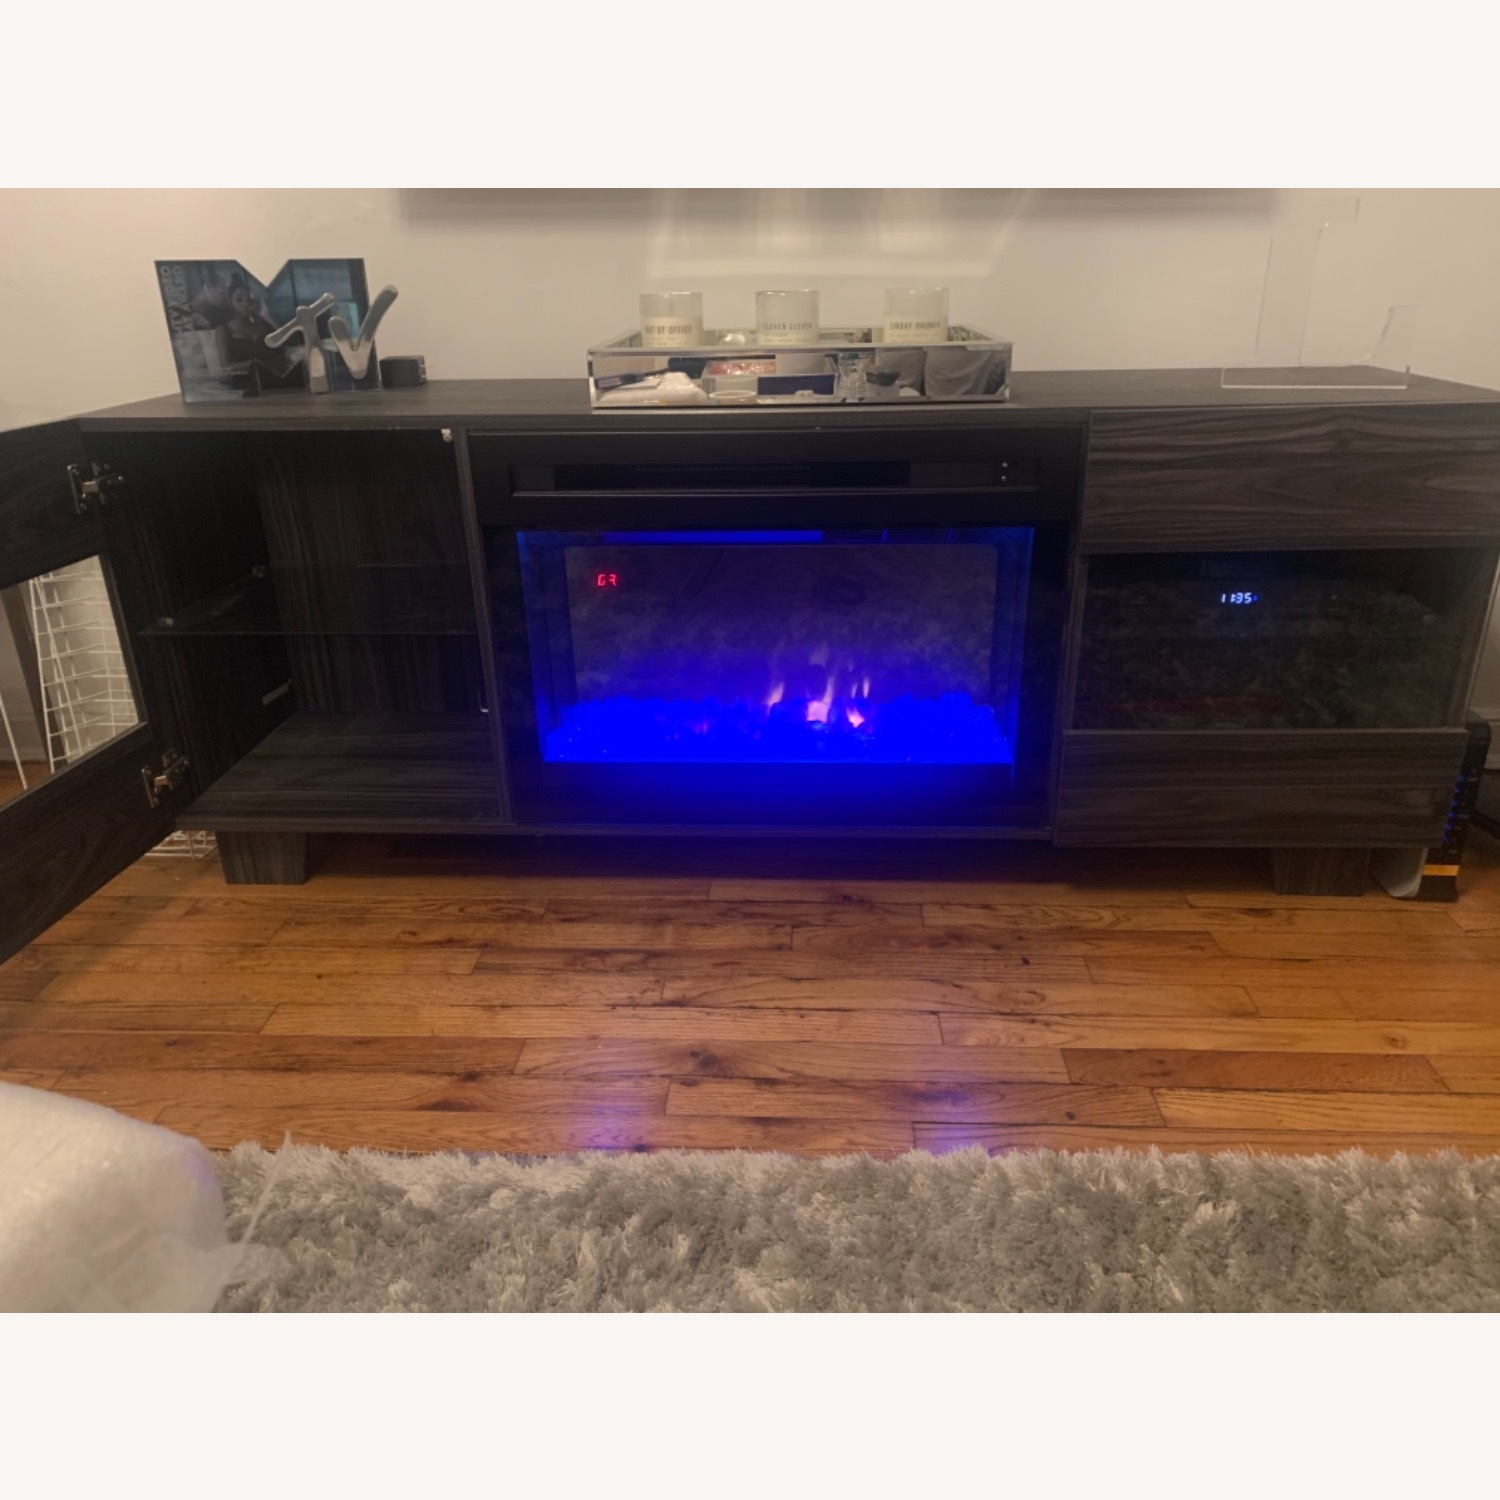 Wayfair Max TV Stand with Electric Fireplace by Dimplex - image-11